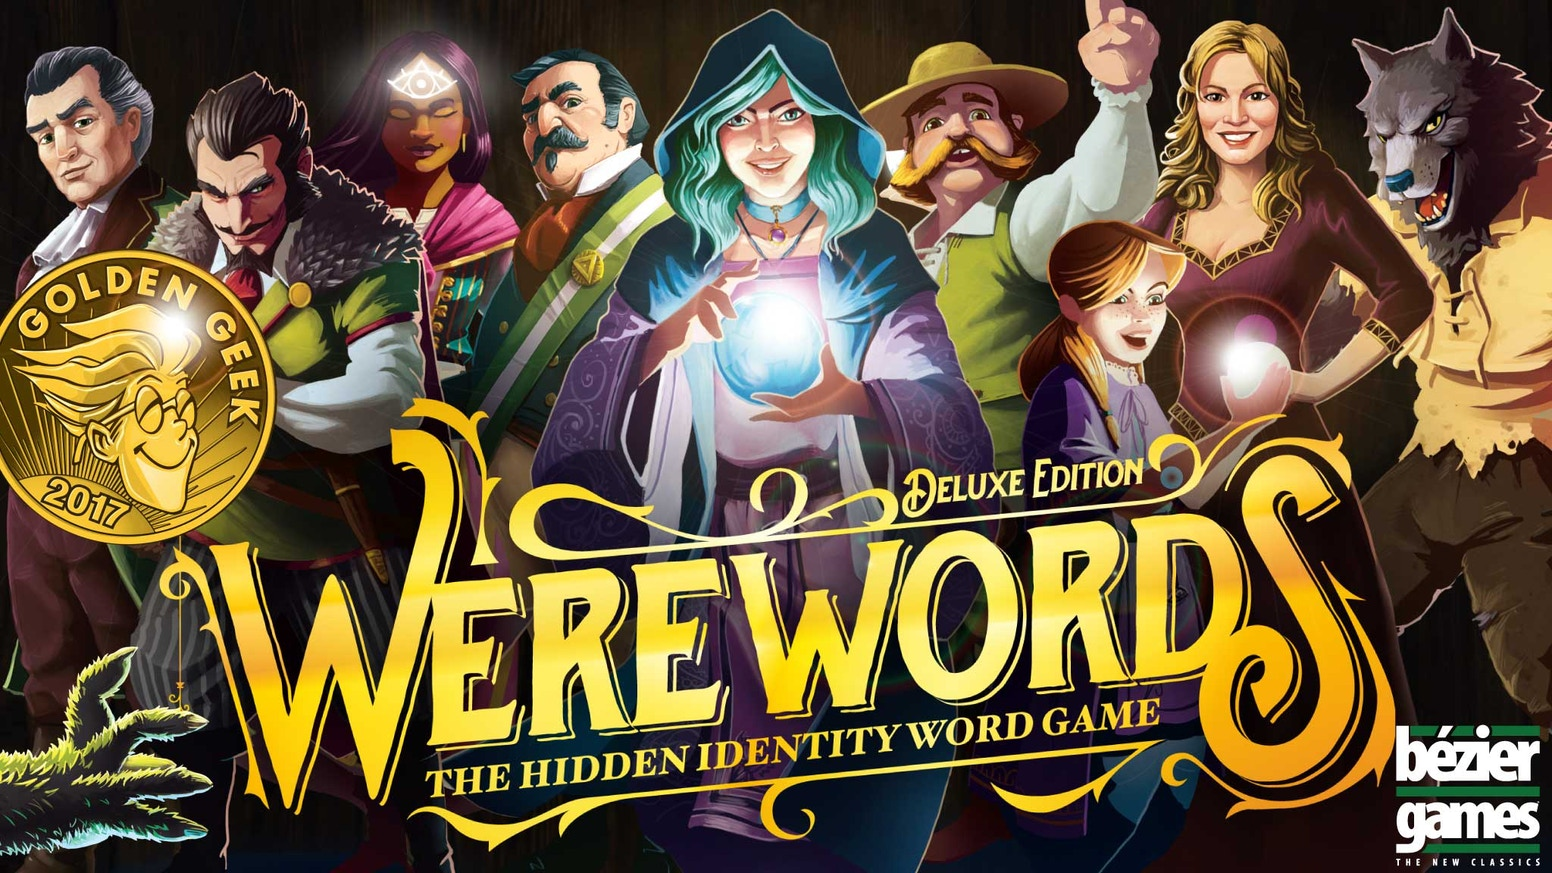 Figure out the Magic Word with all new artwork, roles, modes, and more. From the creators of One Night Ultimate Werewolf!